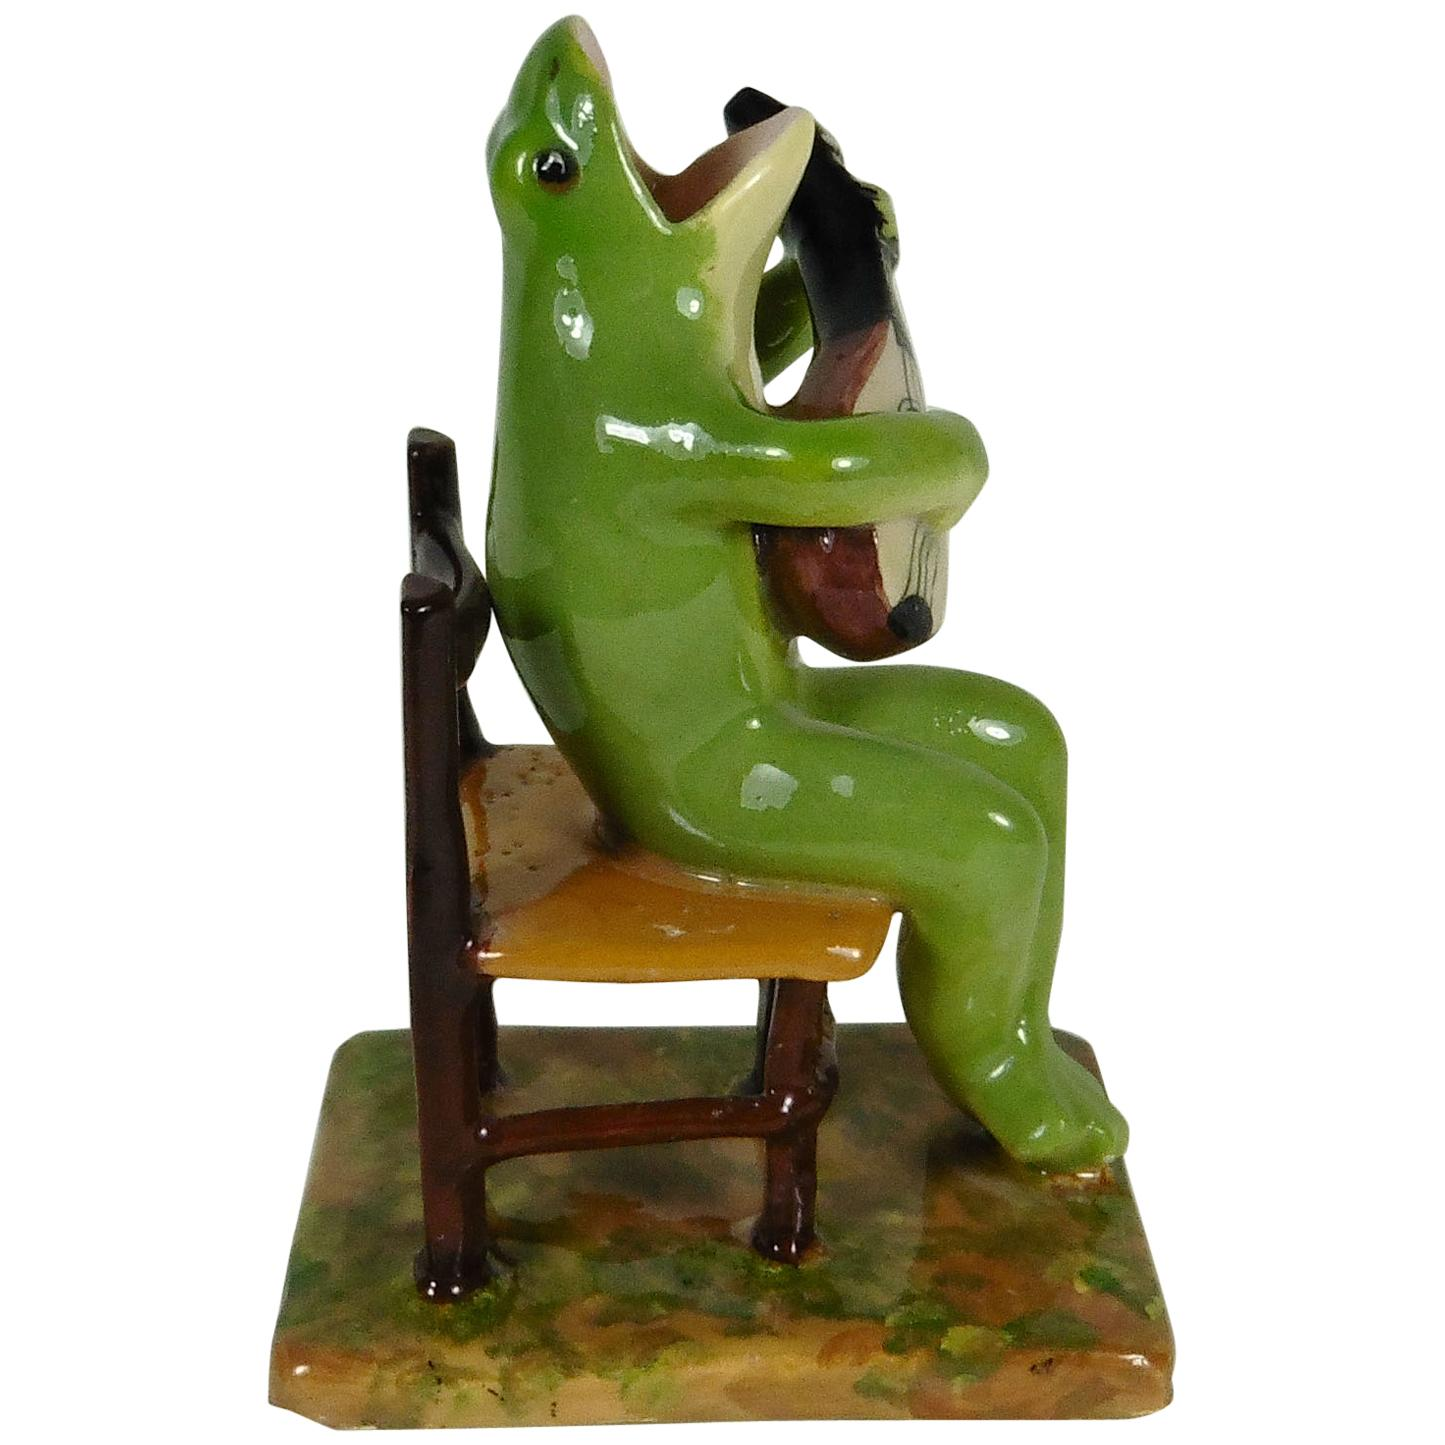 Gentil Rare Majolica Frog Sitting On A Chair Jerome Massier, Circa 1910